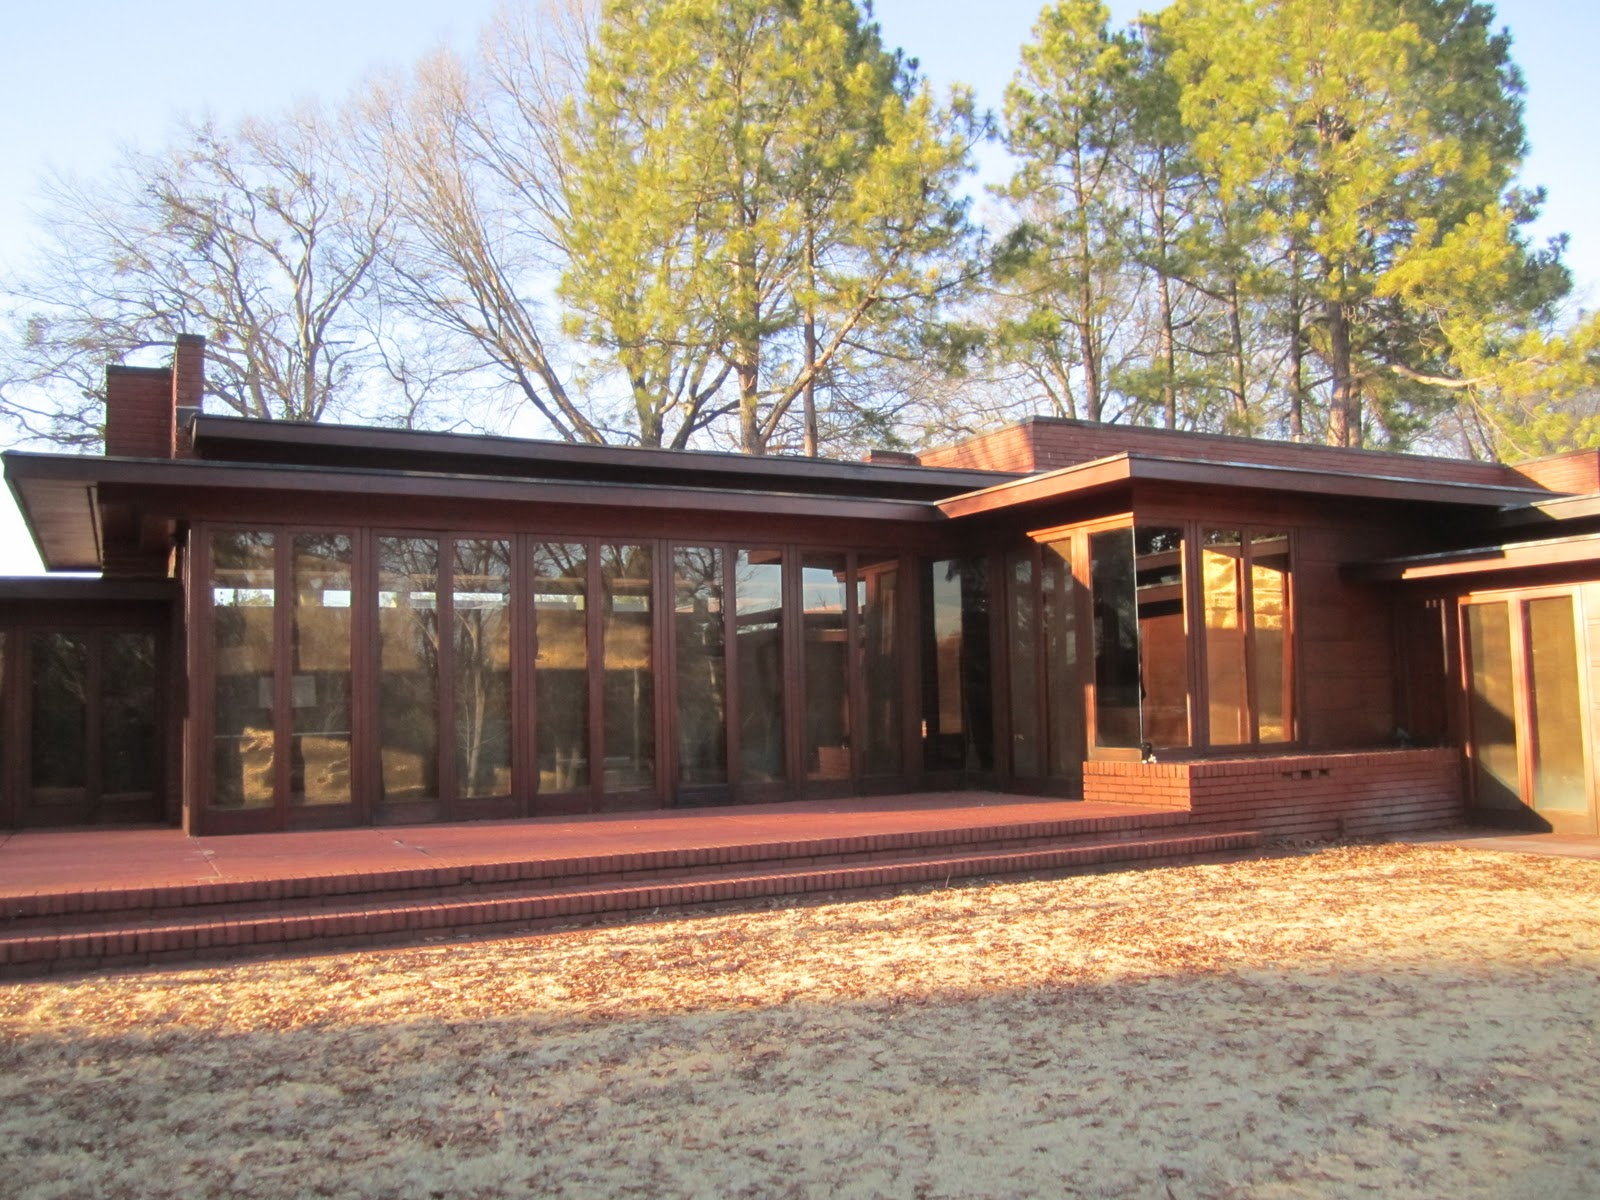 A Visit To The Only Frank Lloyd Wright House In Alabama The Rosenbaum Home